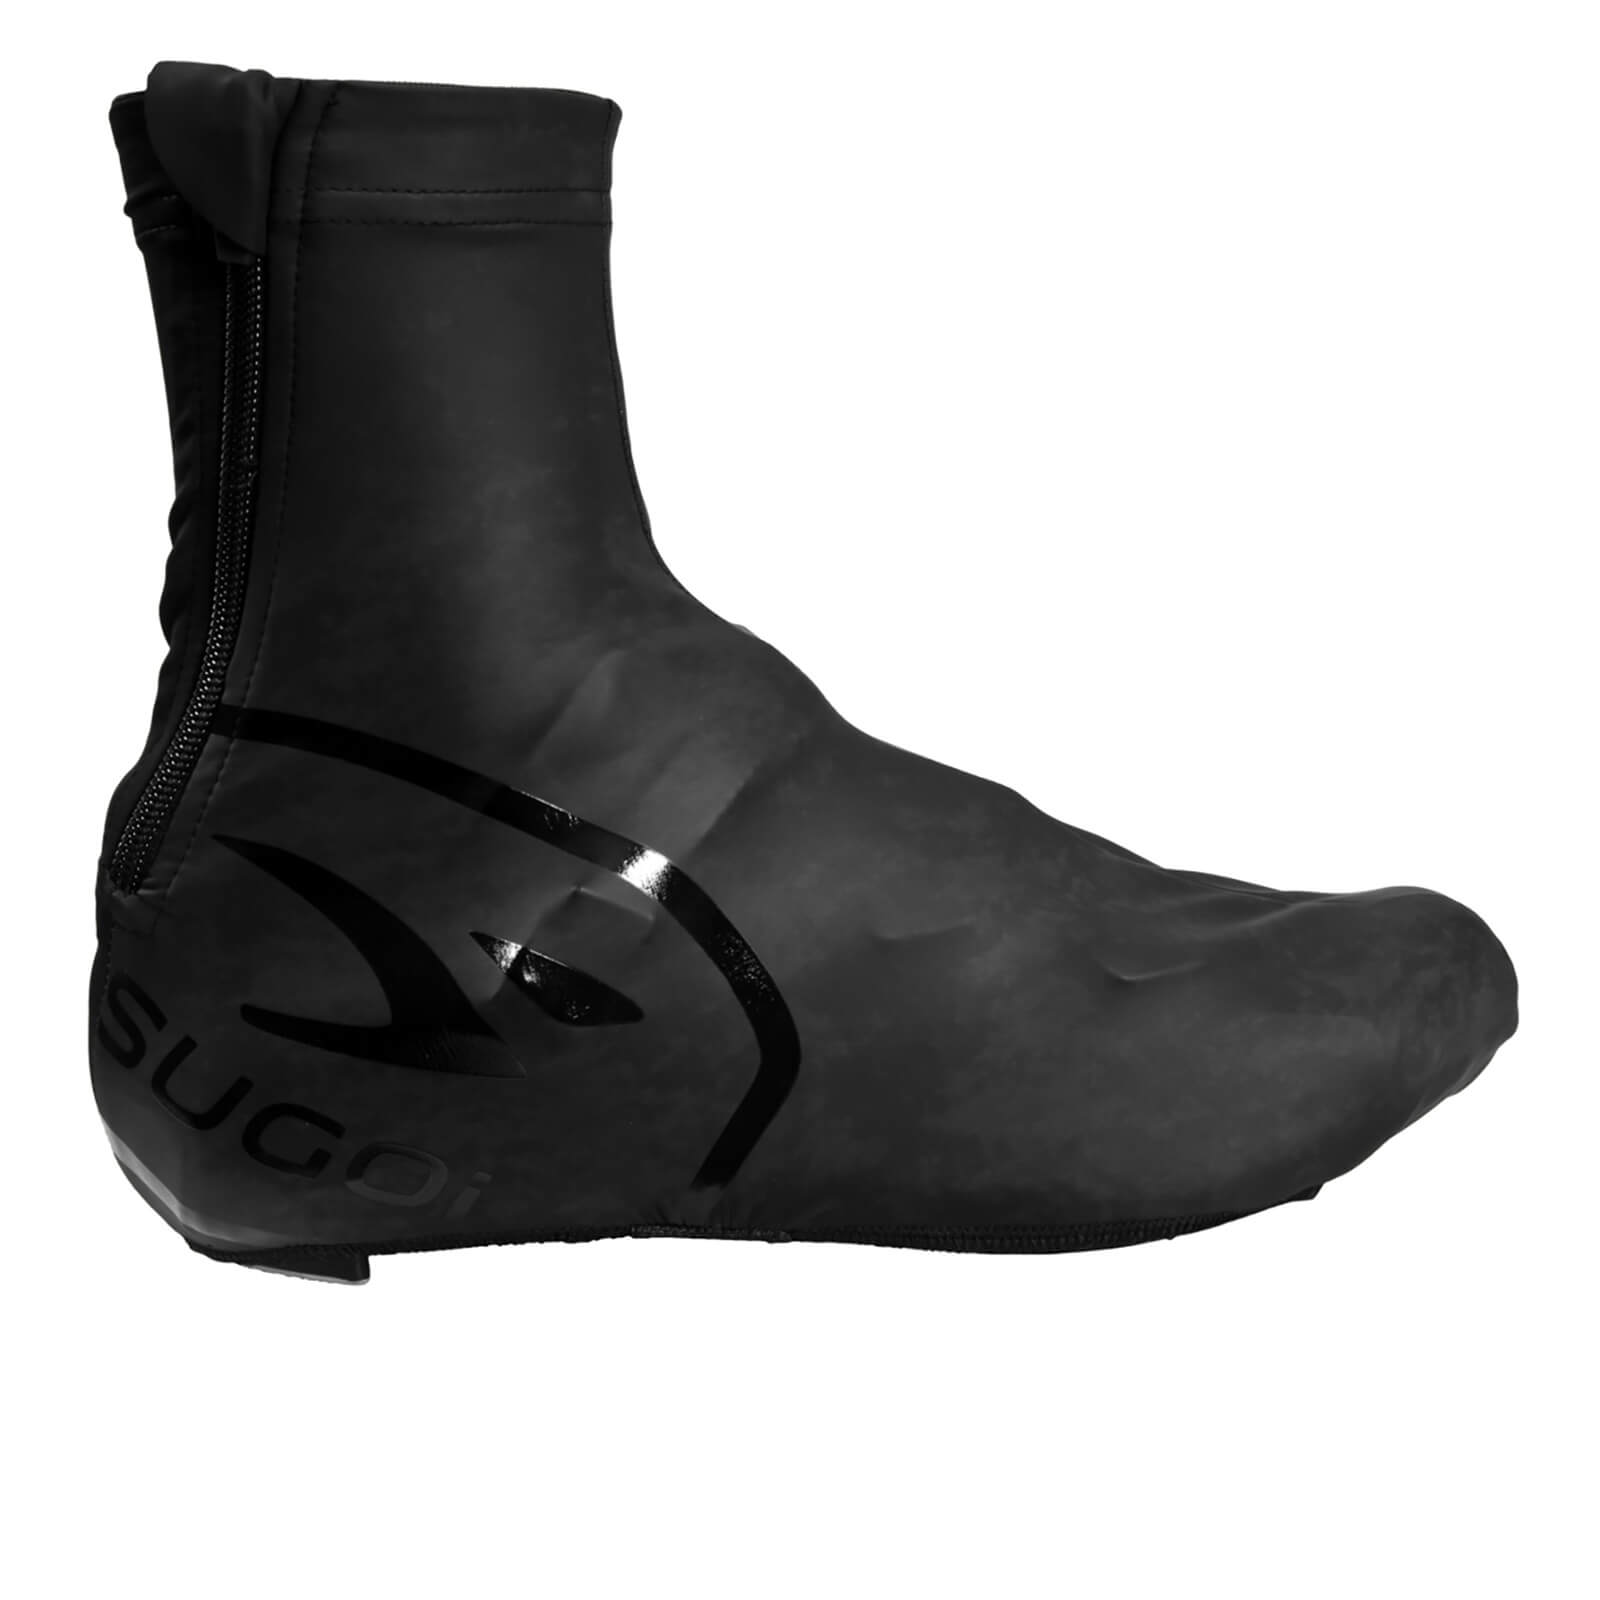 Sugoi Resistor Aero Shoe Cover - Black